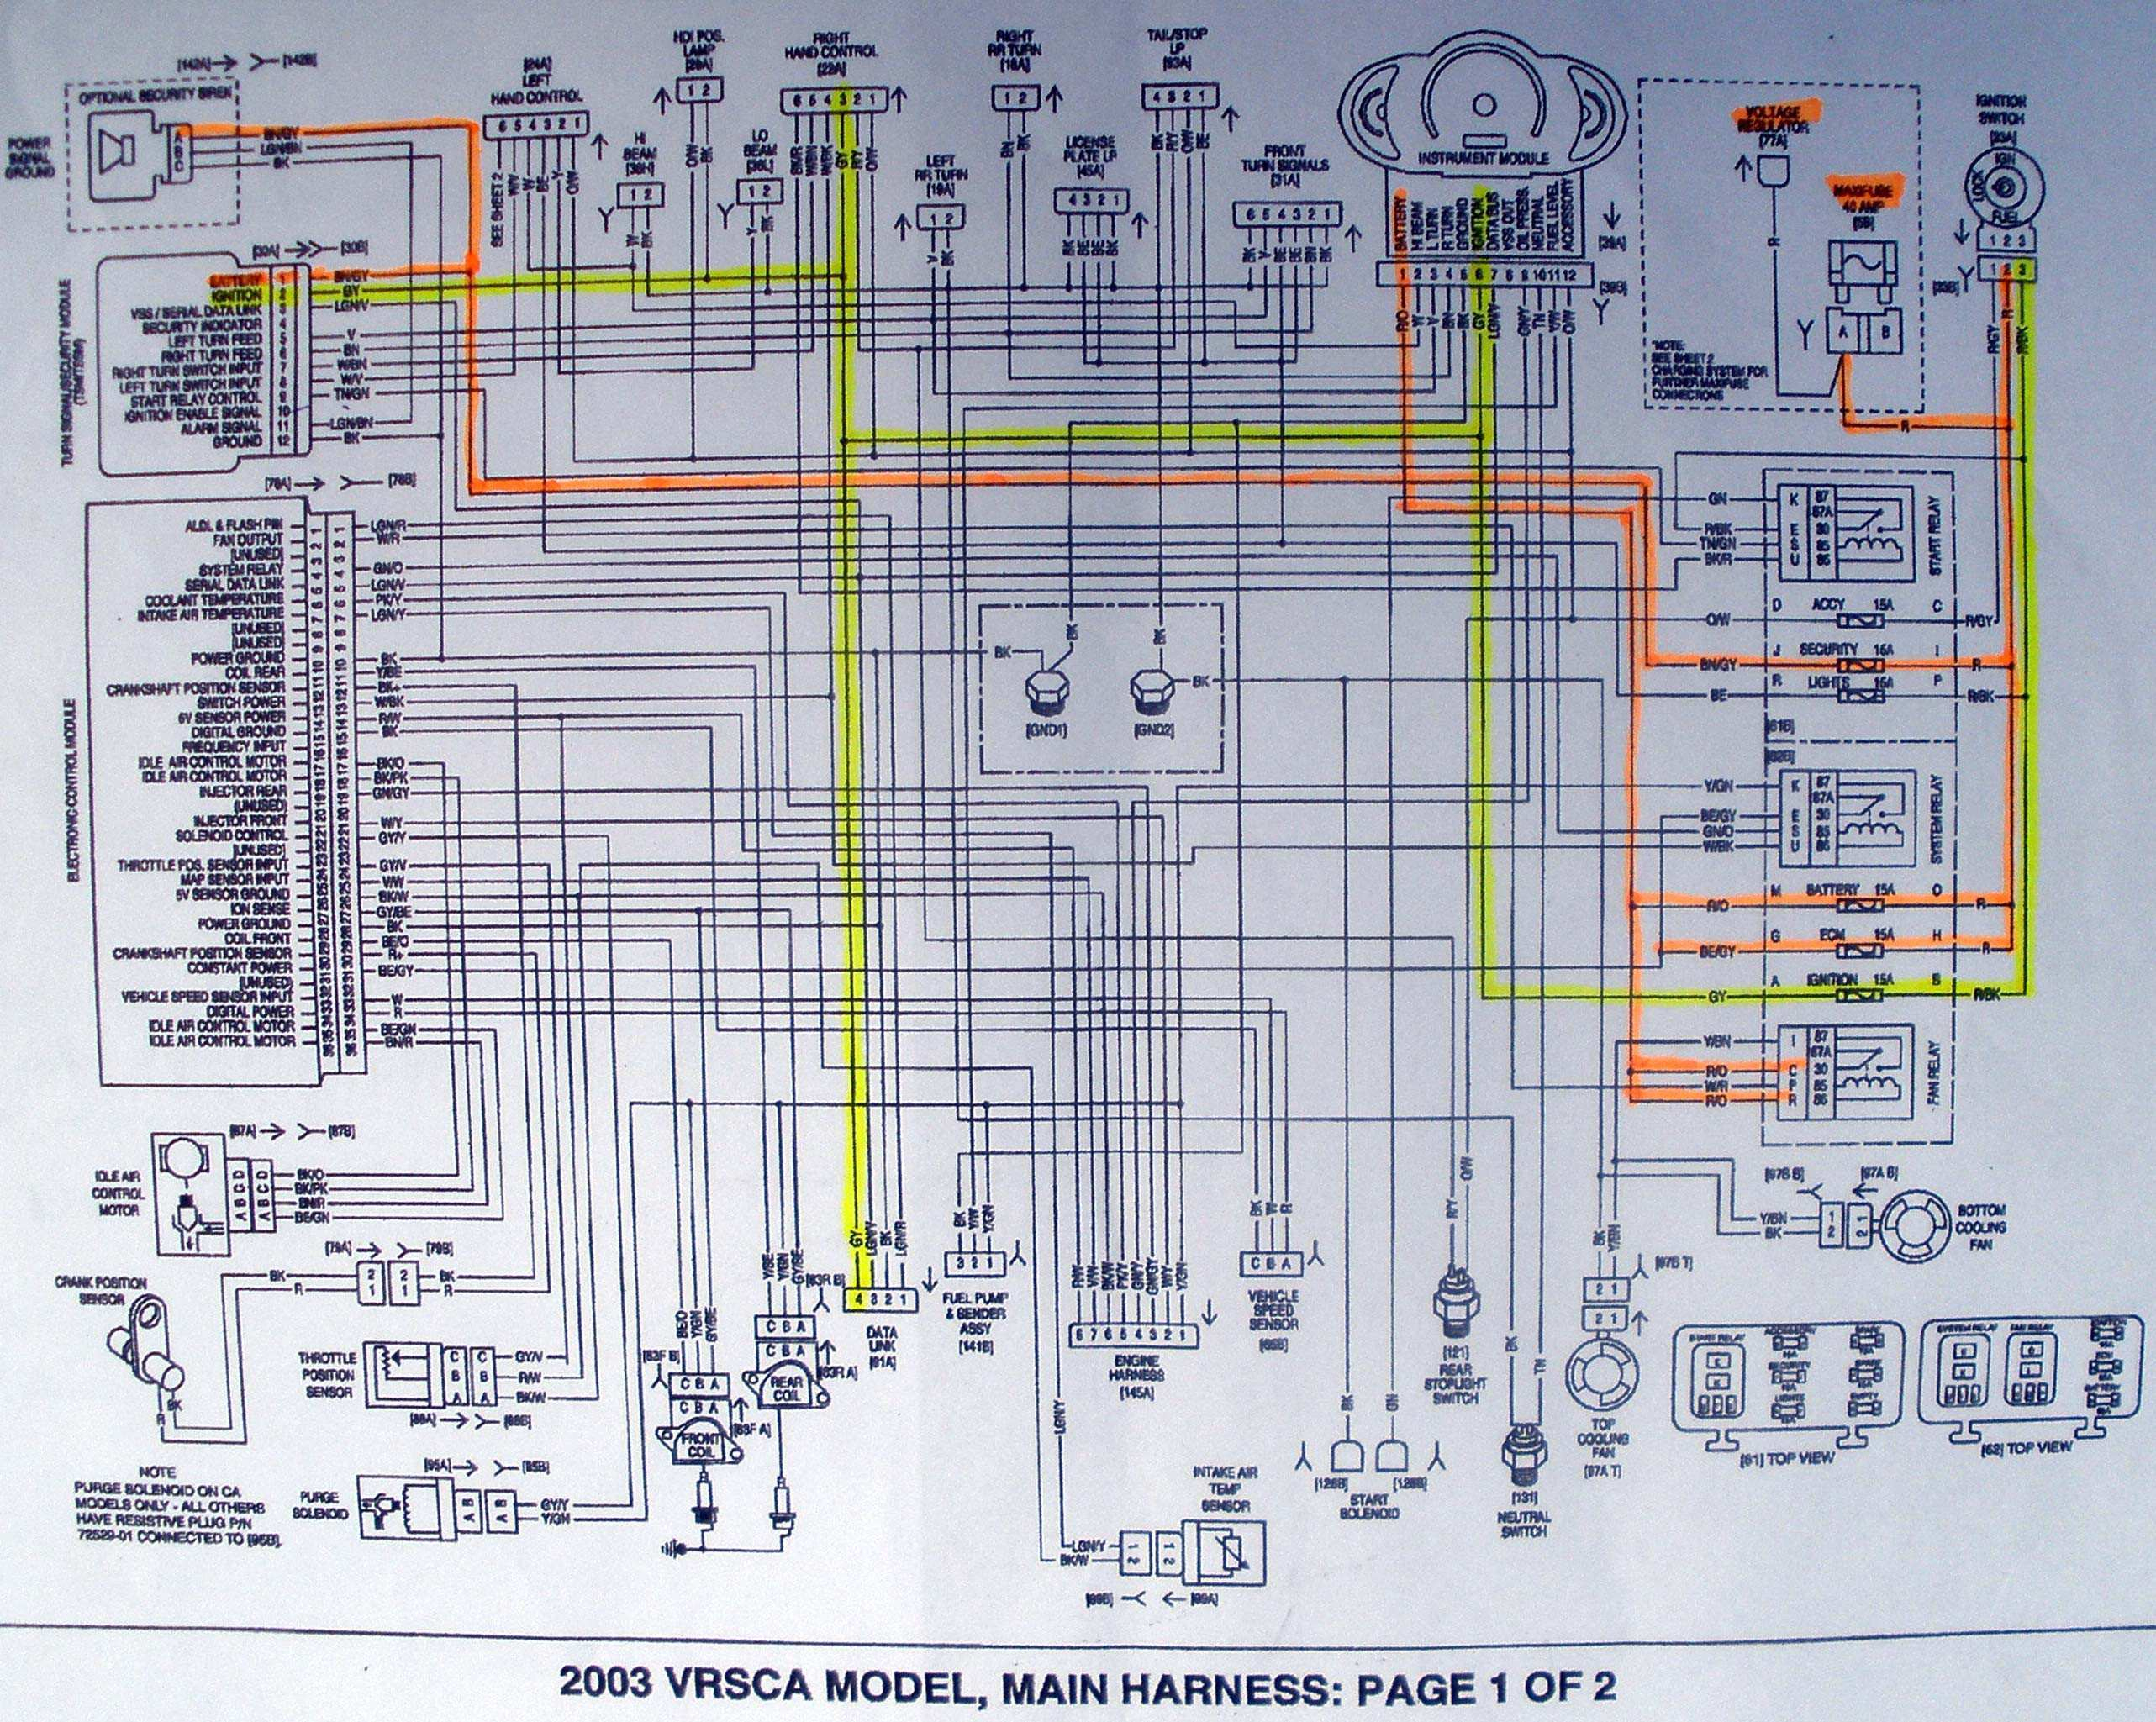 99 Yamaha Outboard Wiring | Wiring Library - Yamaha Outboard Ignition Switch Wiring Diagram